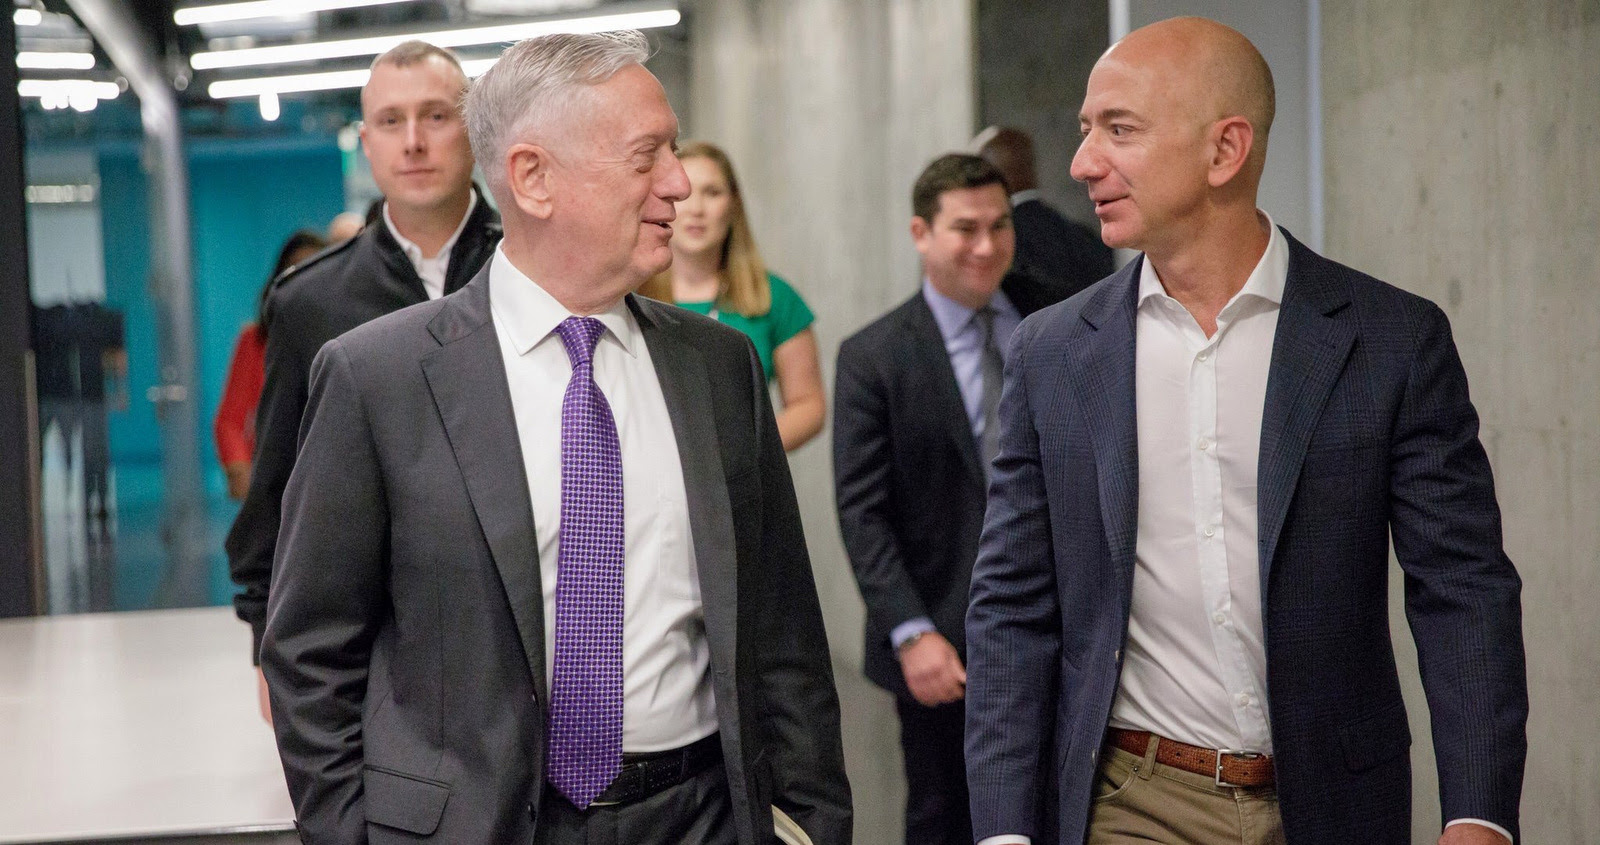 Defense Secretary James Mattis chats with Amazon founder Jeff Bezos during a visit to west coast tech and defense companies. (Jeff Bezos/Twitter)